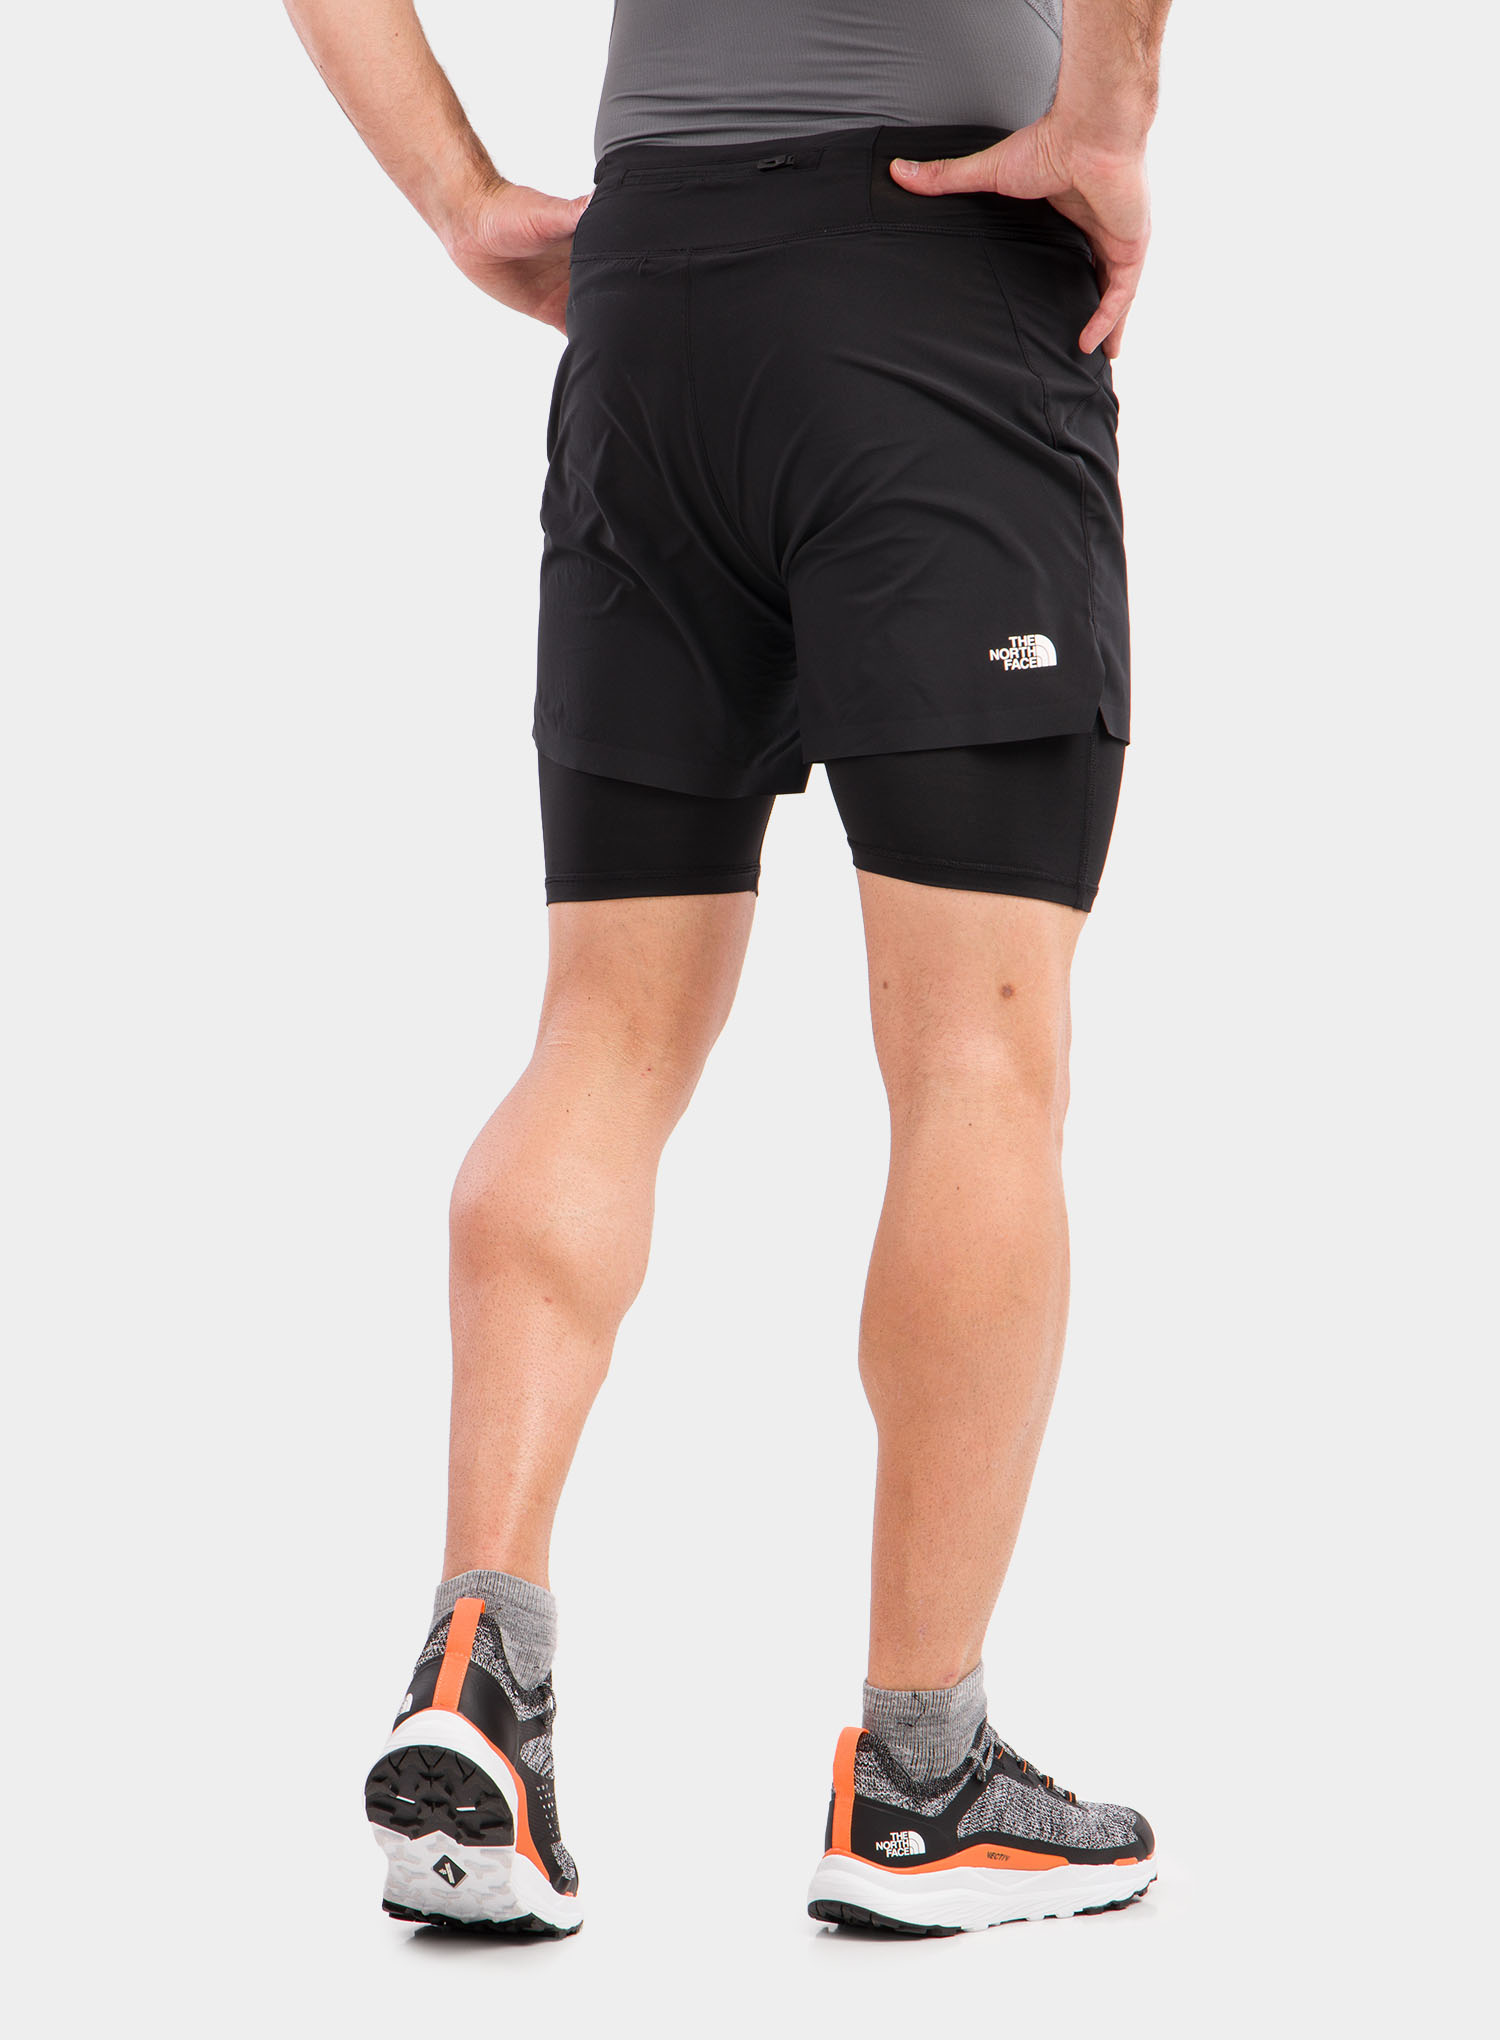 Spodenki The North Face Circadian Comp Lined Short - black - zdjęcie nr. 2